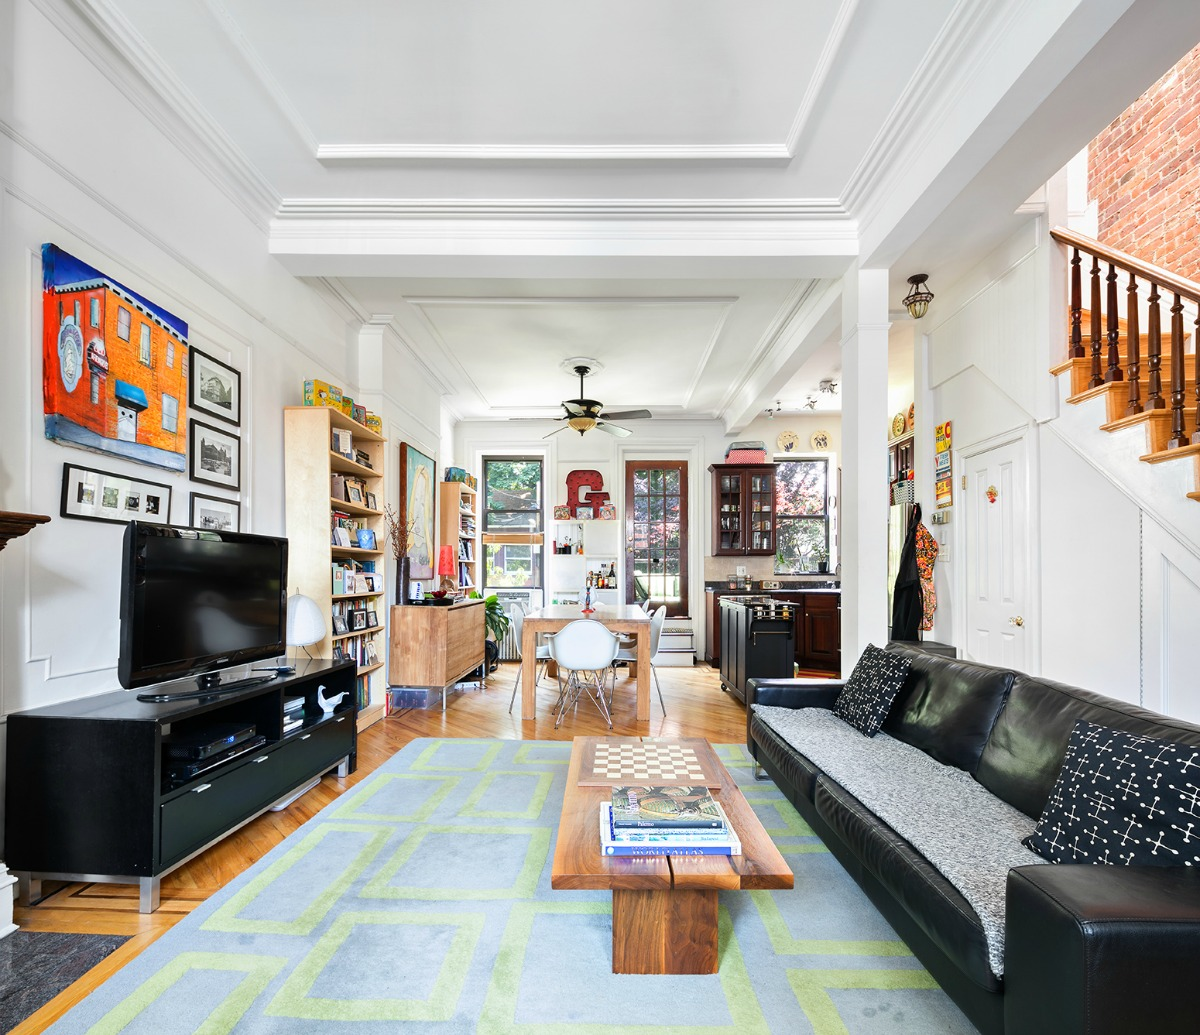 Find A Duplex For Rent: This $4,750/Month Park Slope Townhouse Duplex Feels Like A